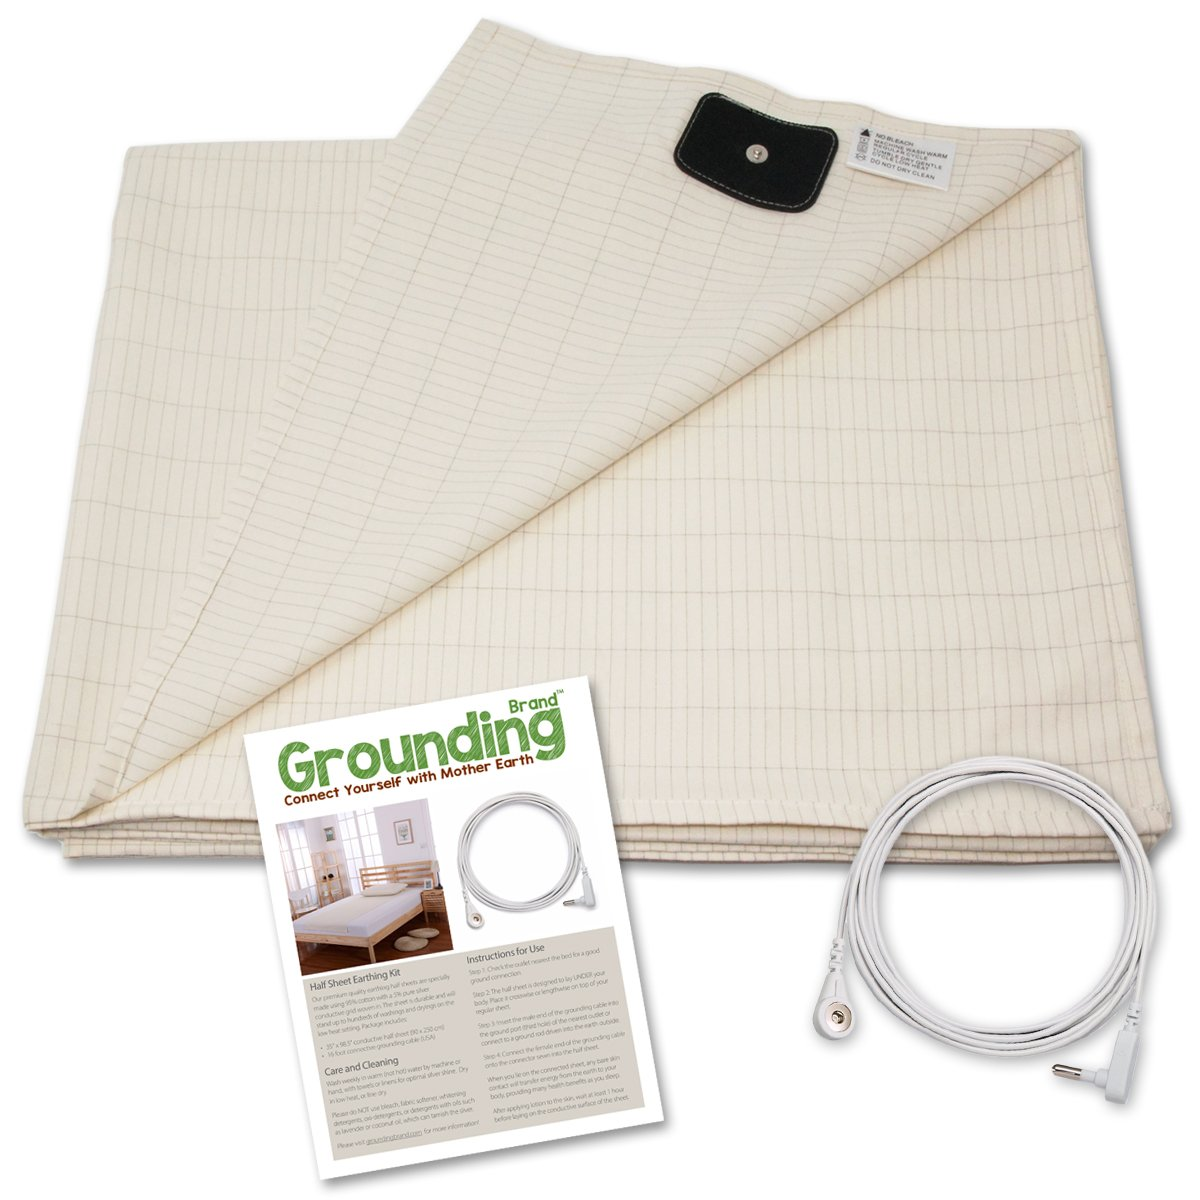 Grounding Brand Flat Twin Size Sheet with Grounding Connection Cable, 400TC Conductive Mat with Pure Silver Thread for Better Sleep, Natural Wellness and Healthy Earth Energy, Beige